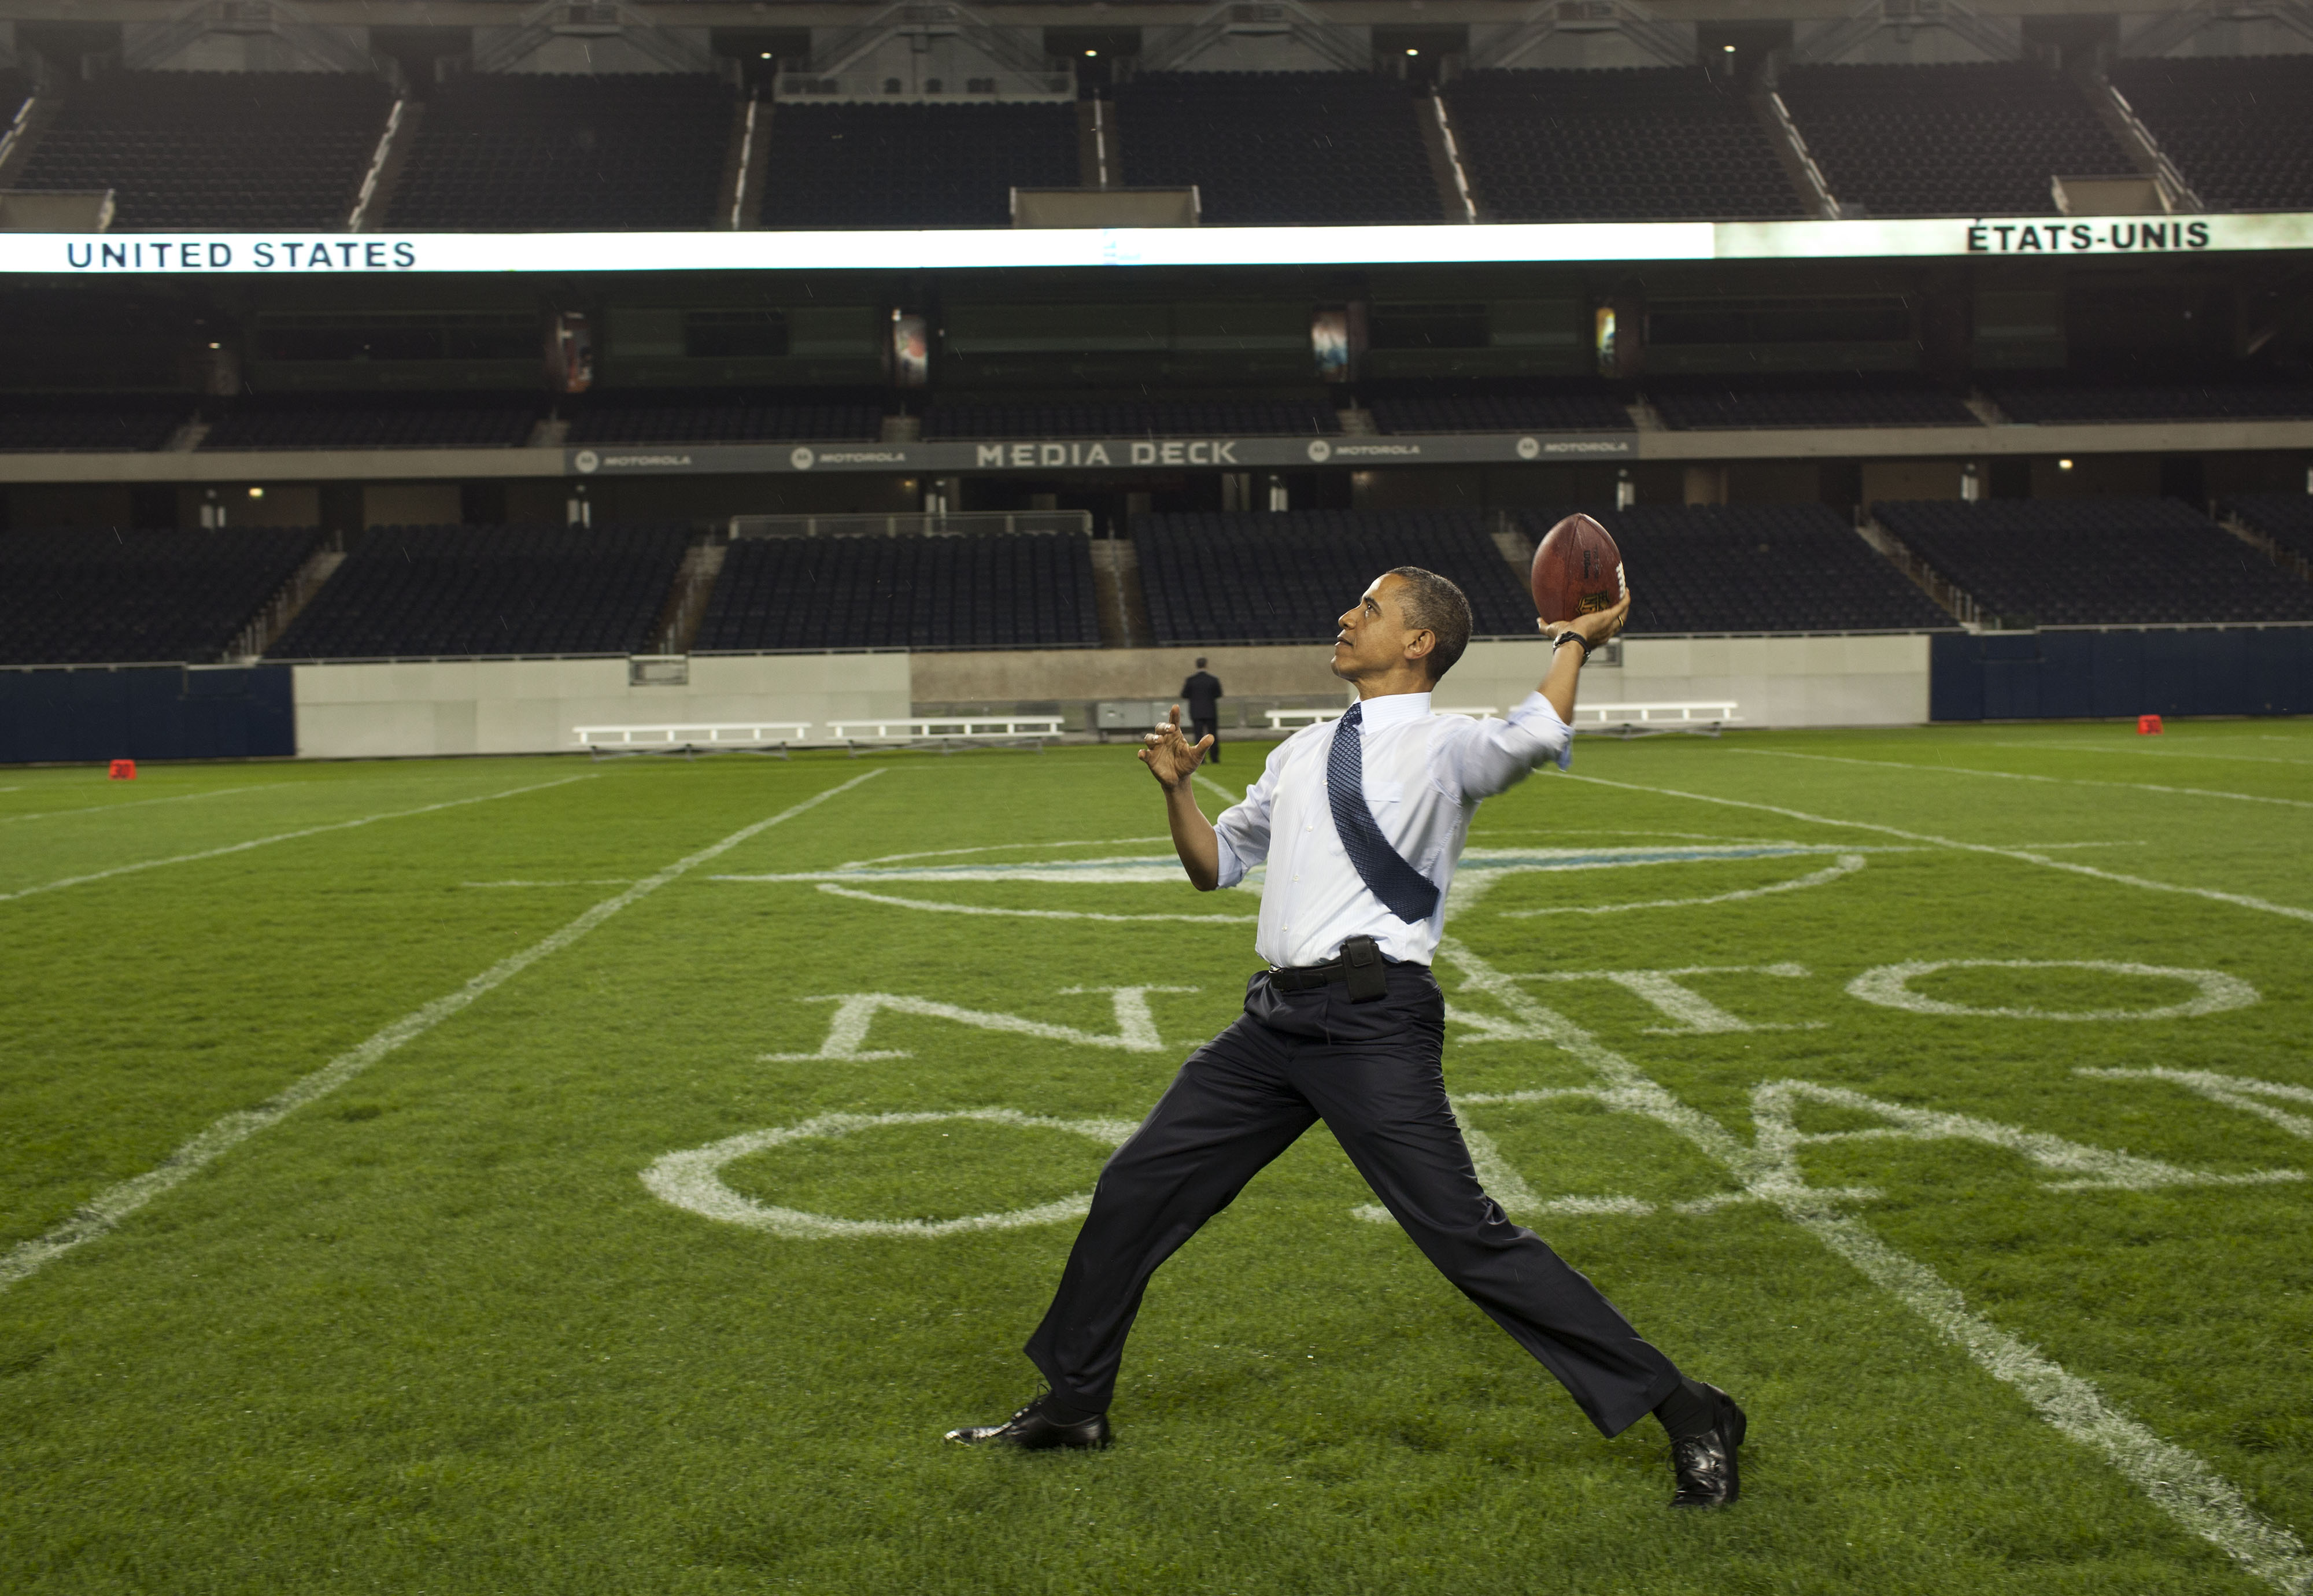 44th President of the United States, Barack Obama, throws a football at Soldier Field